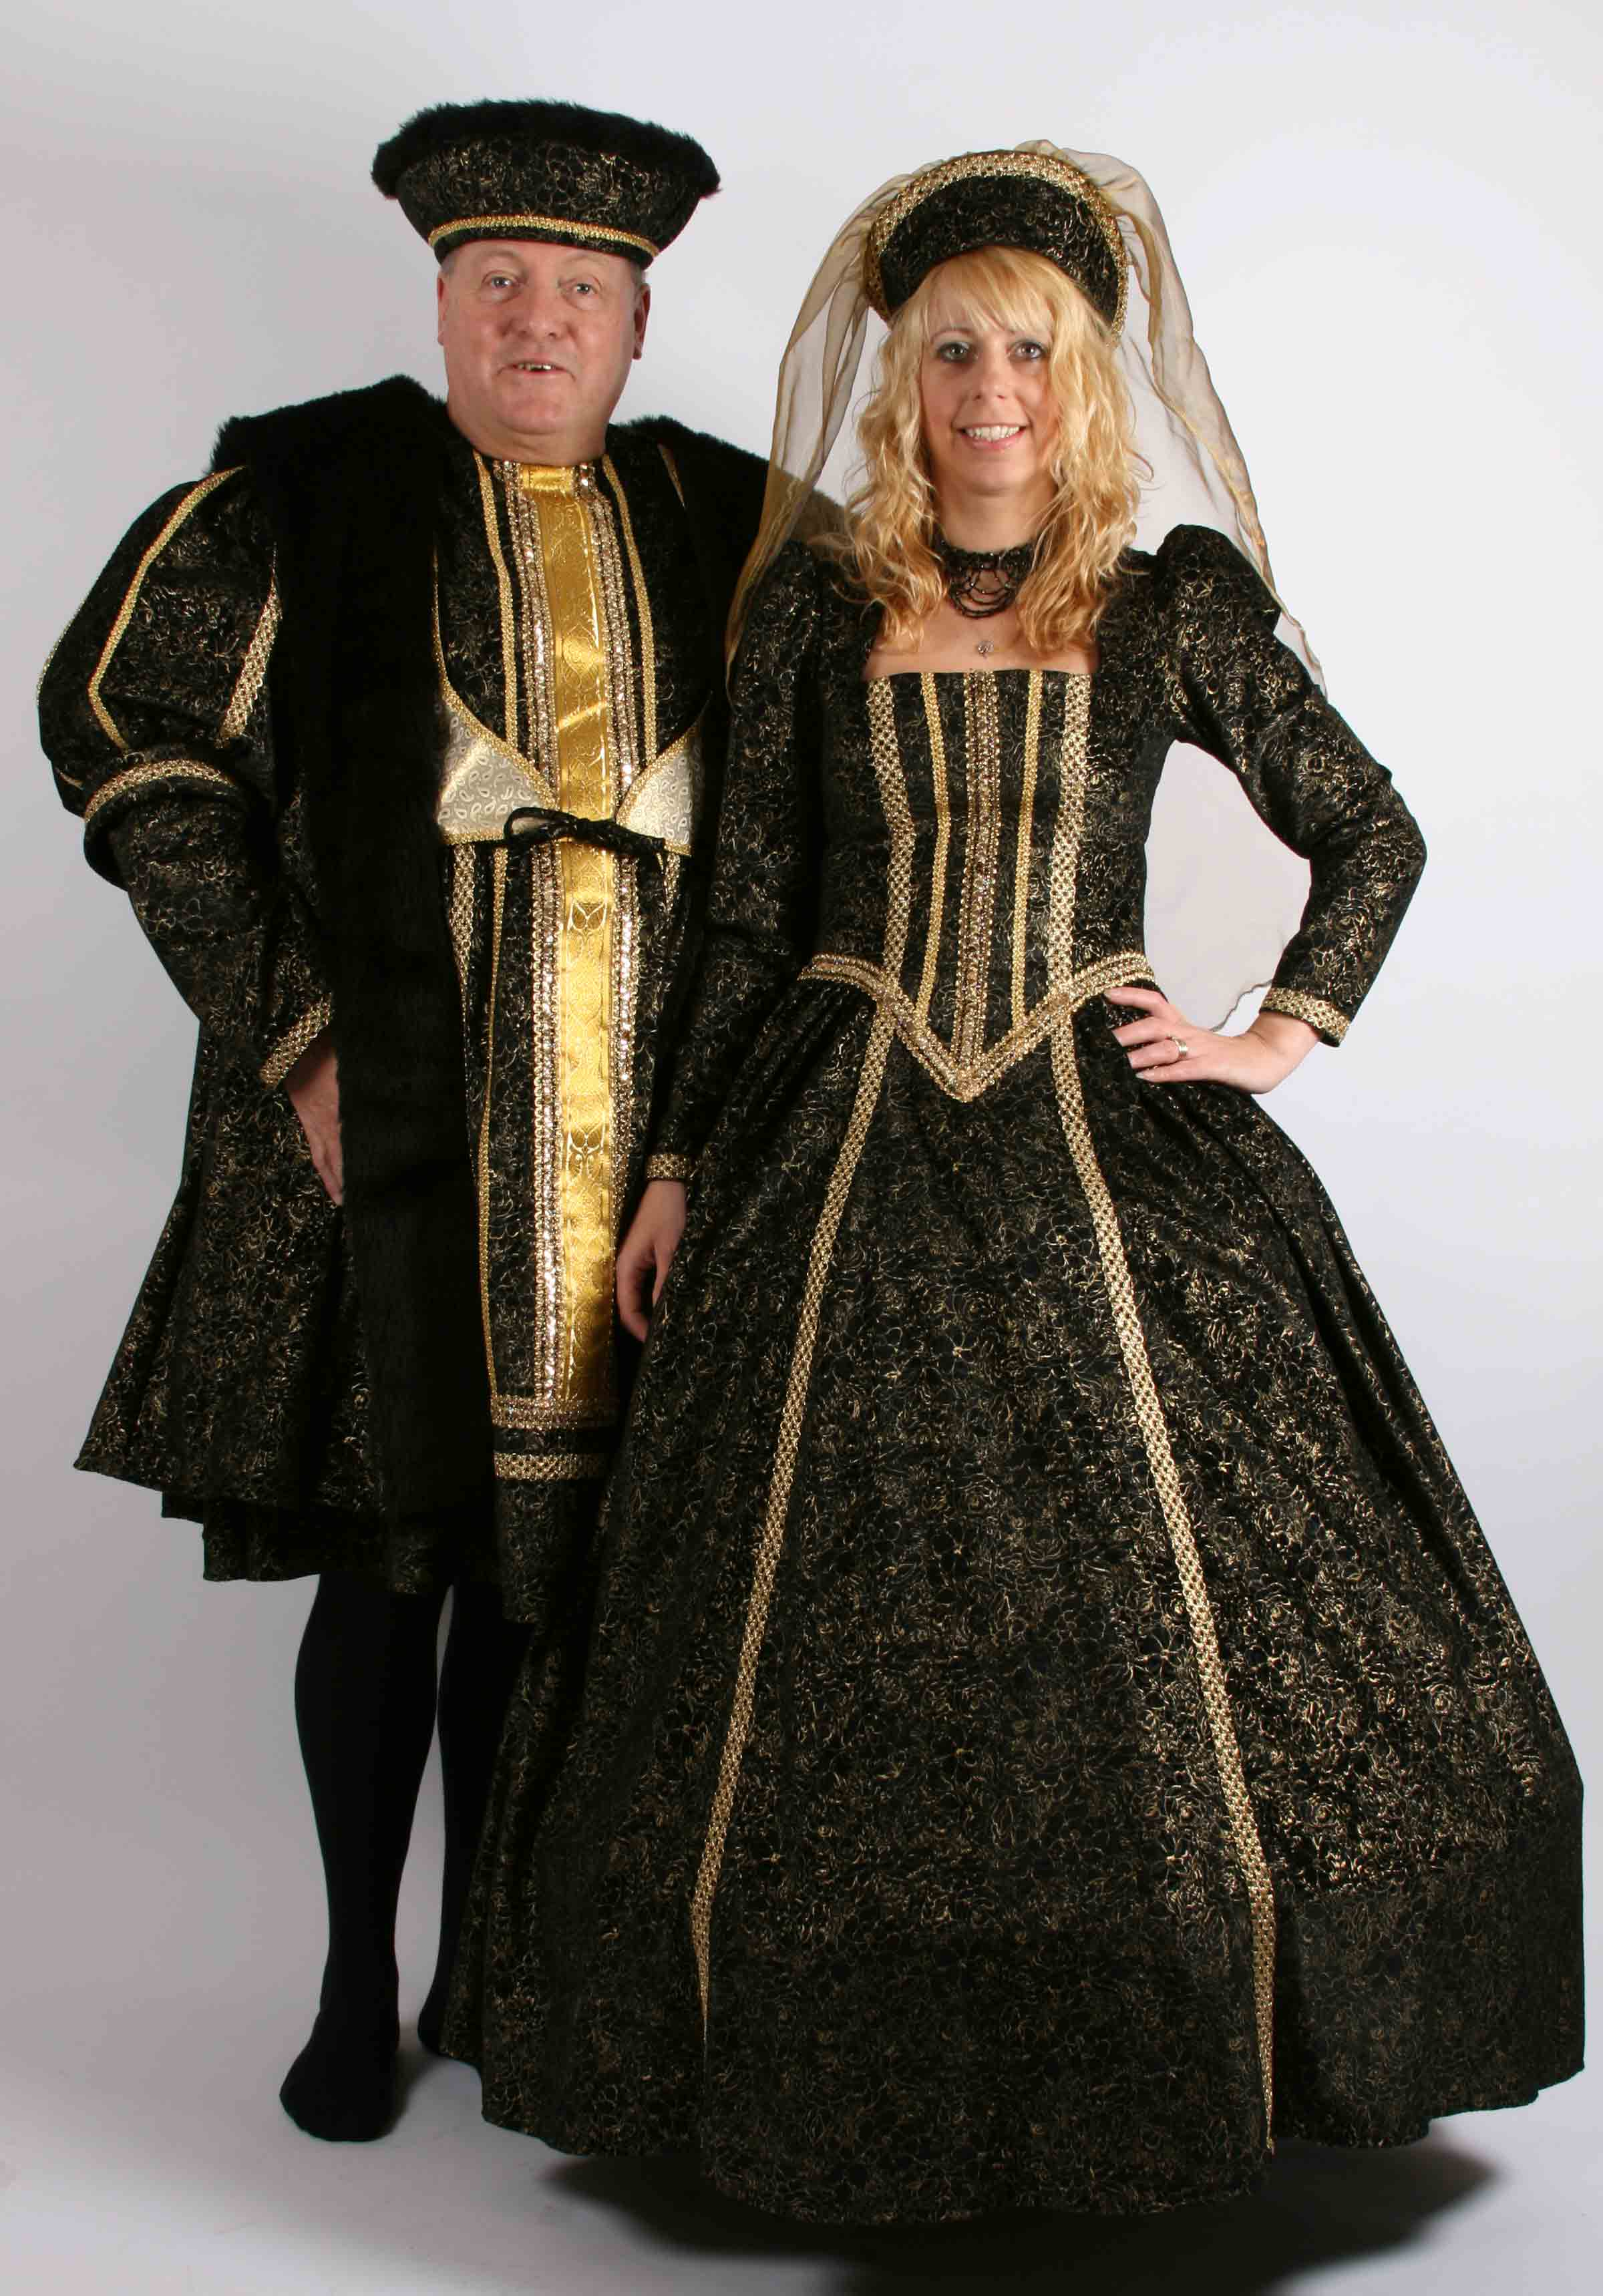 Henry & Wife - Black & Gold